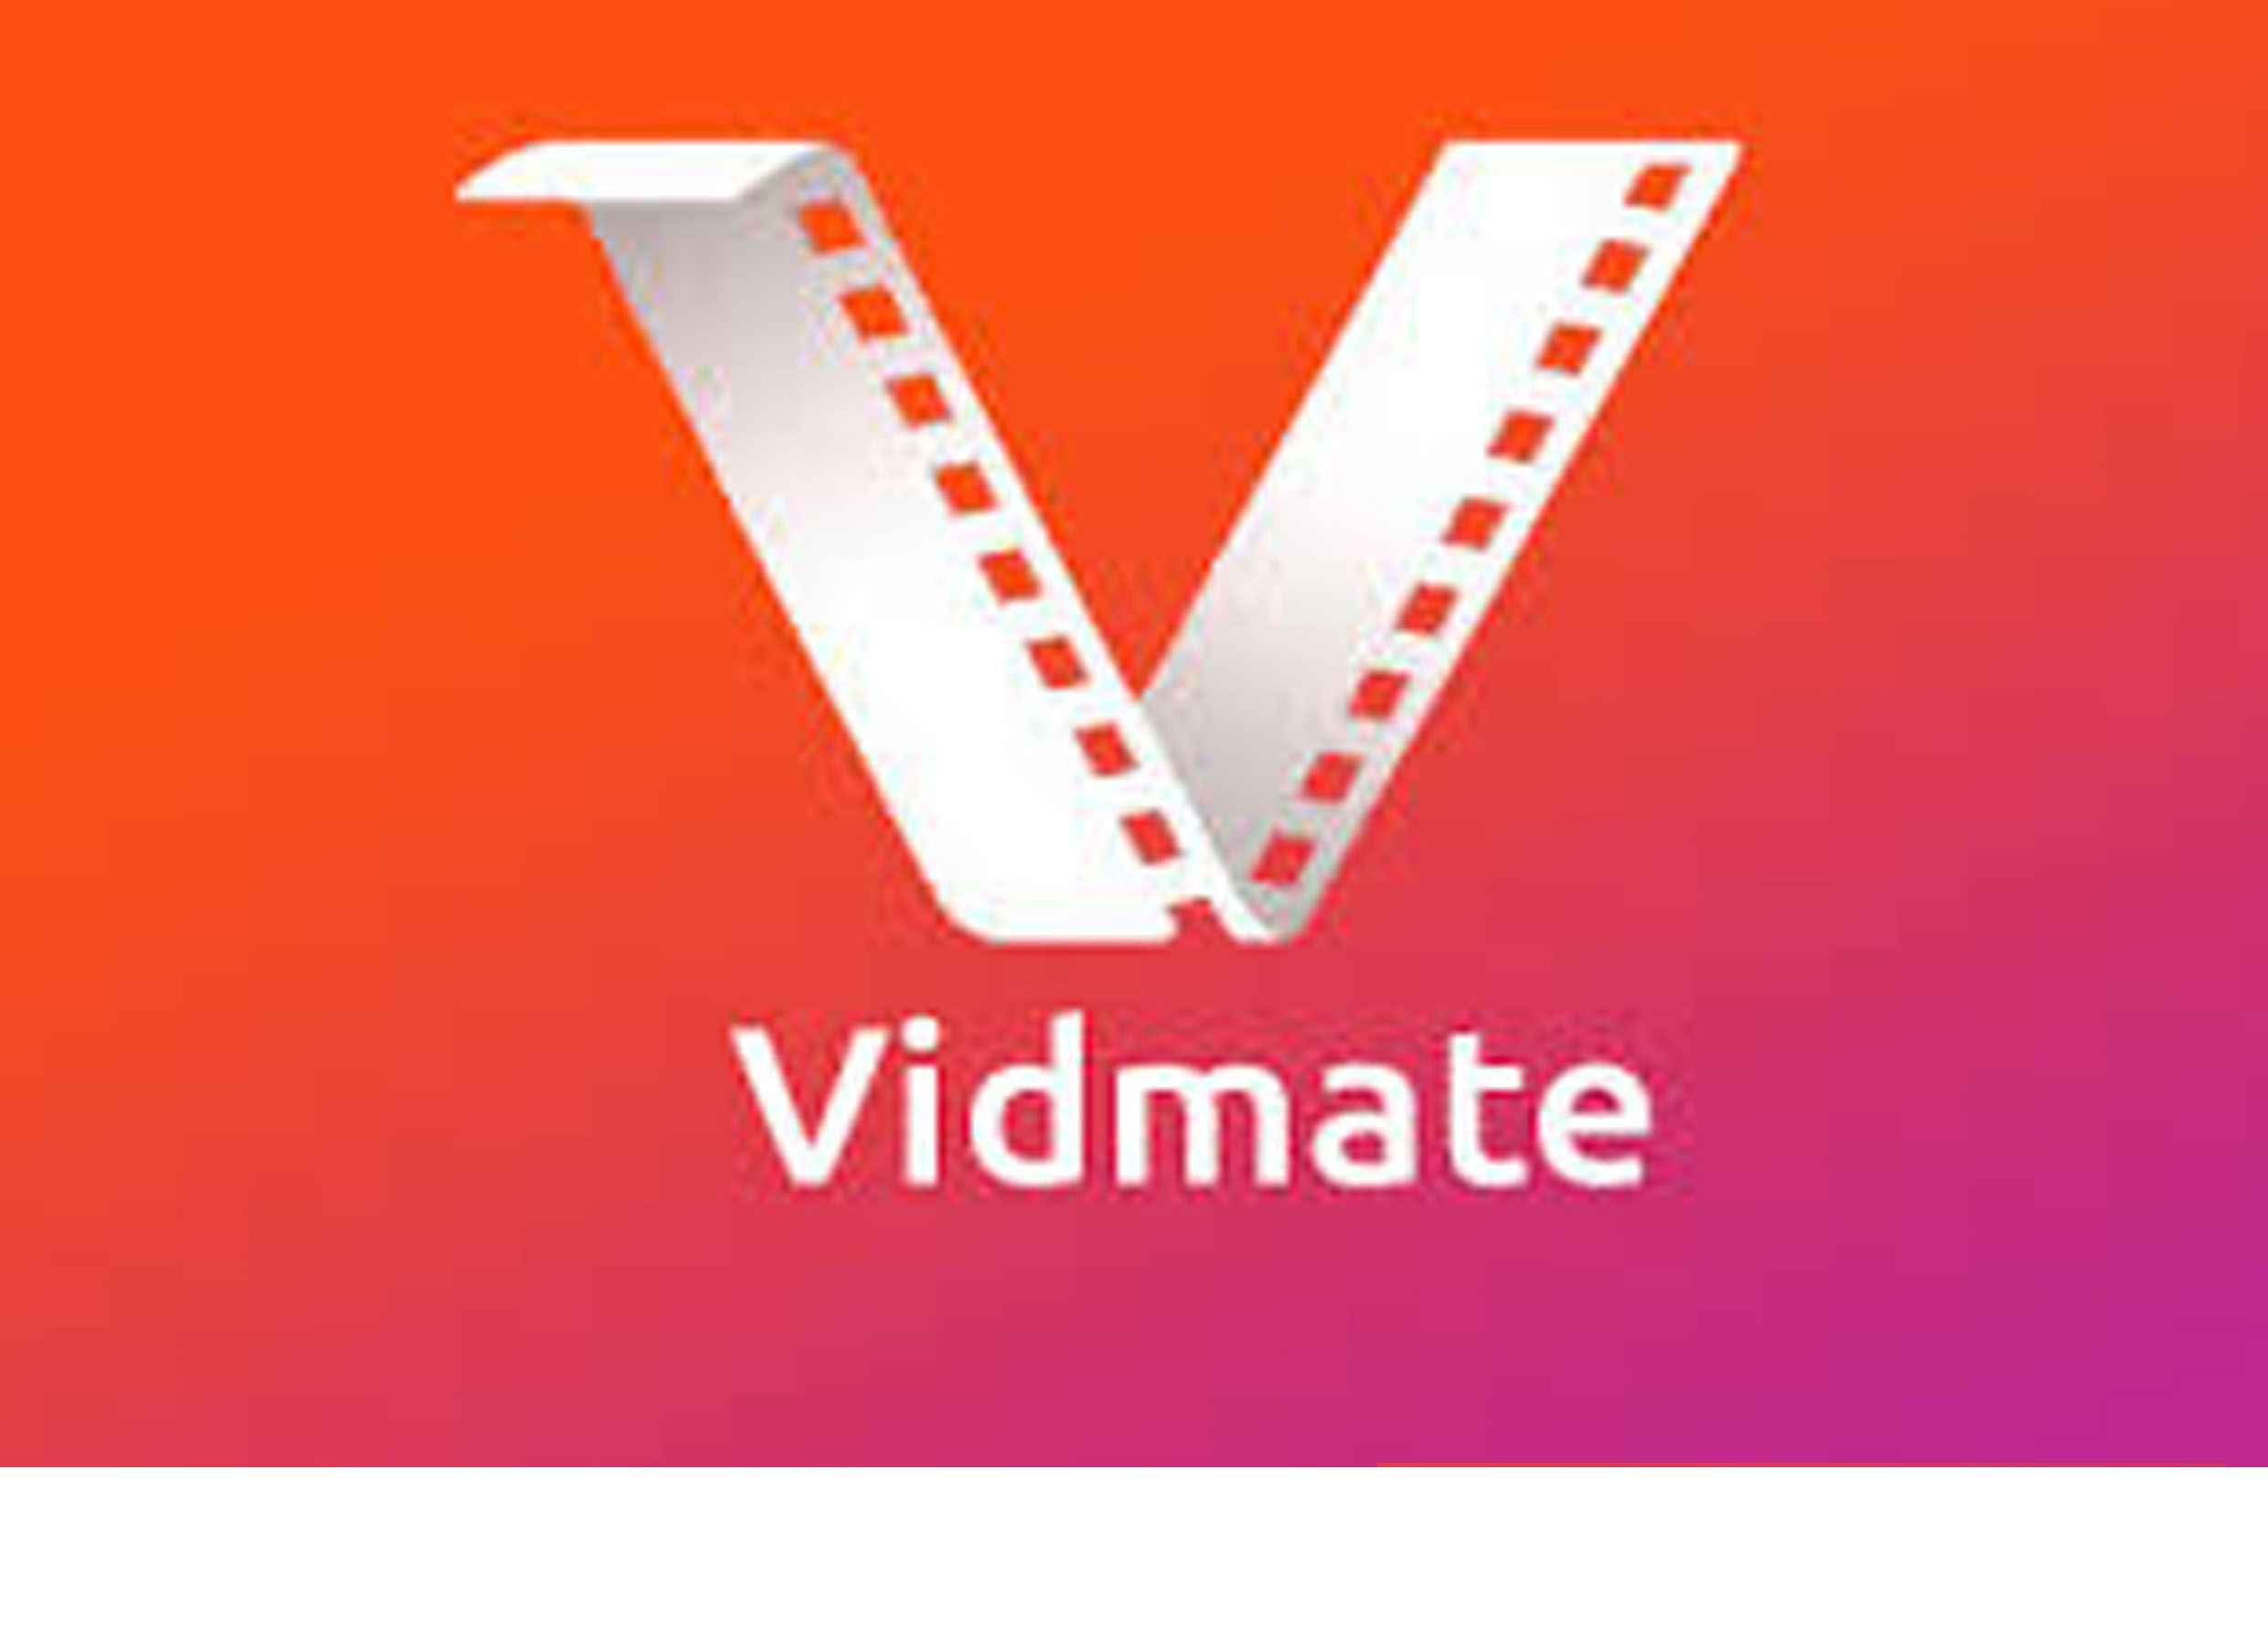 Vidmate 4.4612 APK for Android